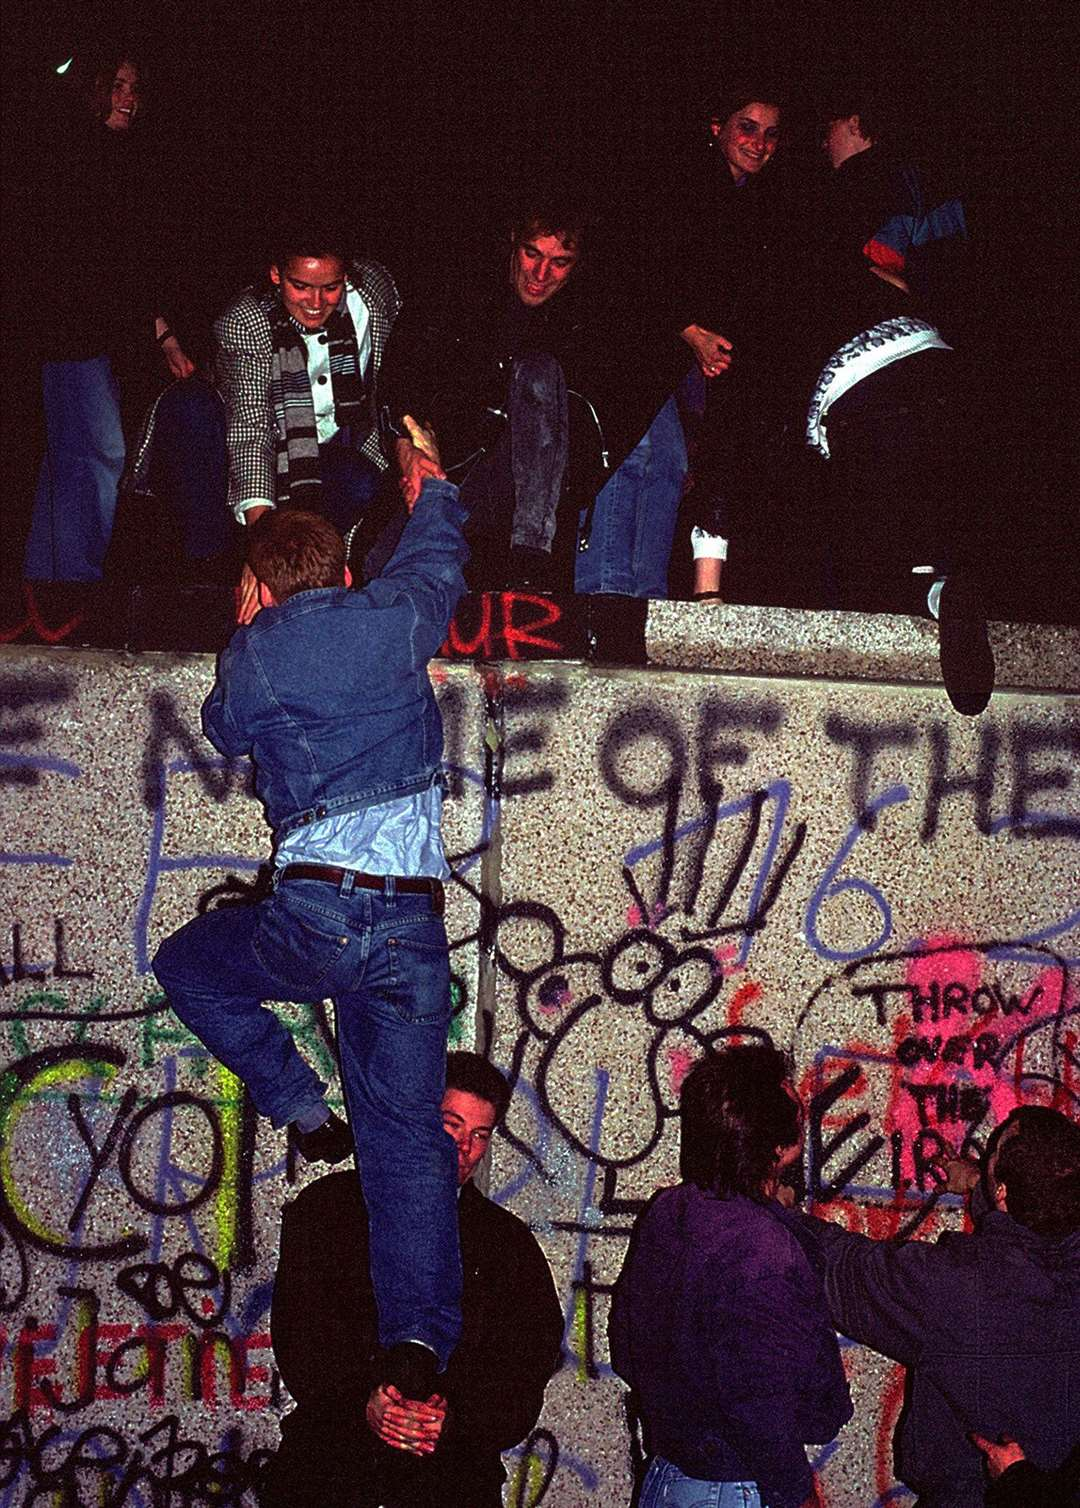 People climbing the Berlin Wall on November 9, 1989. Picture: iStock/PA